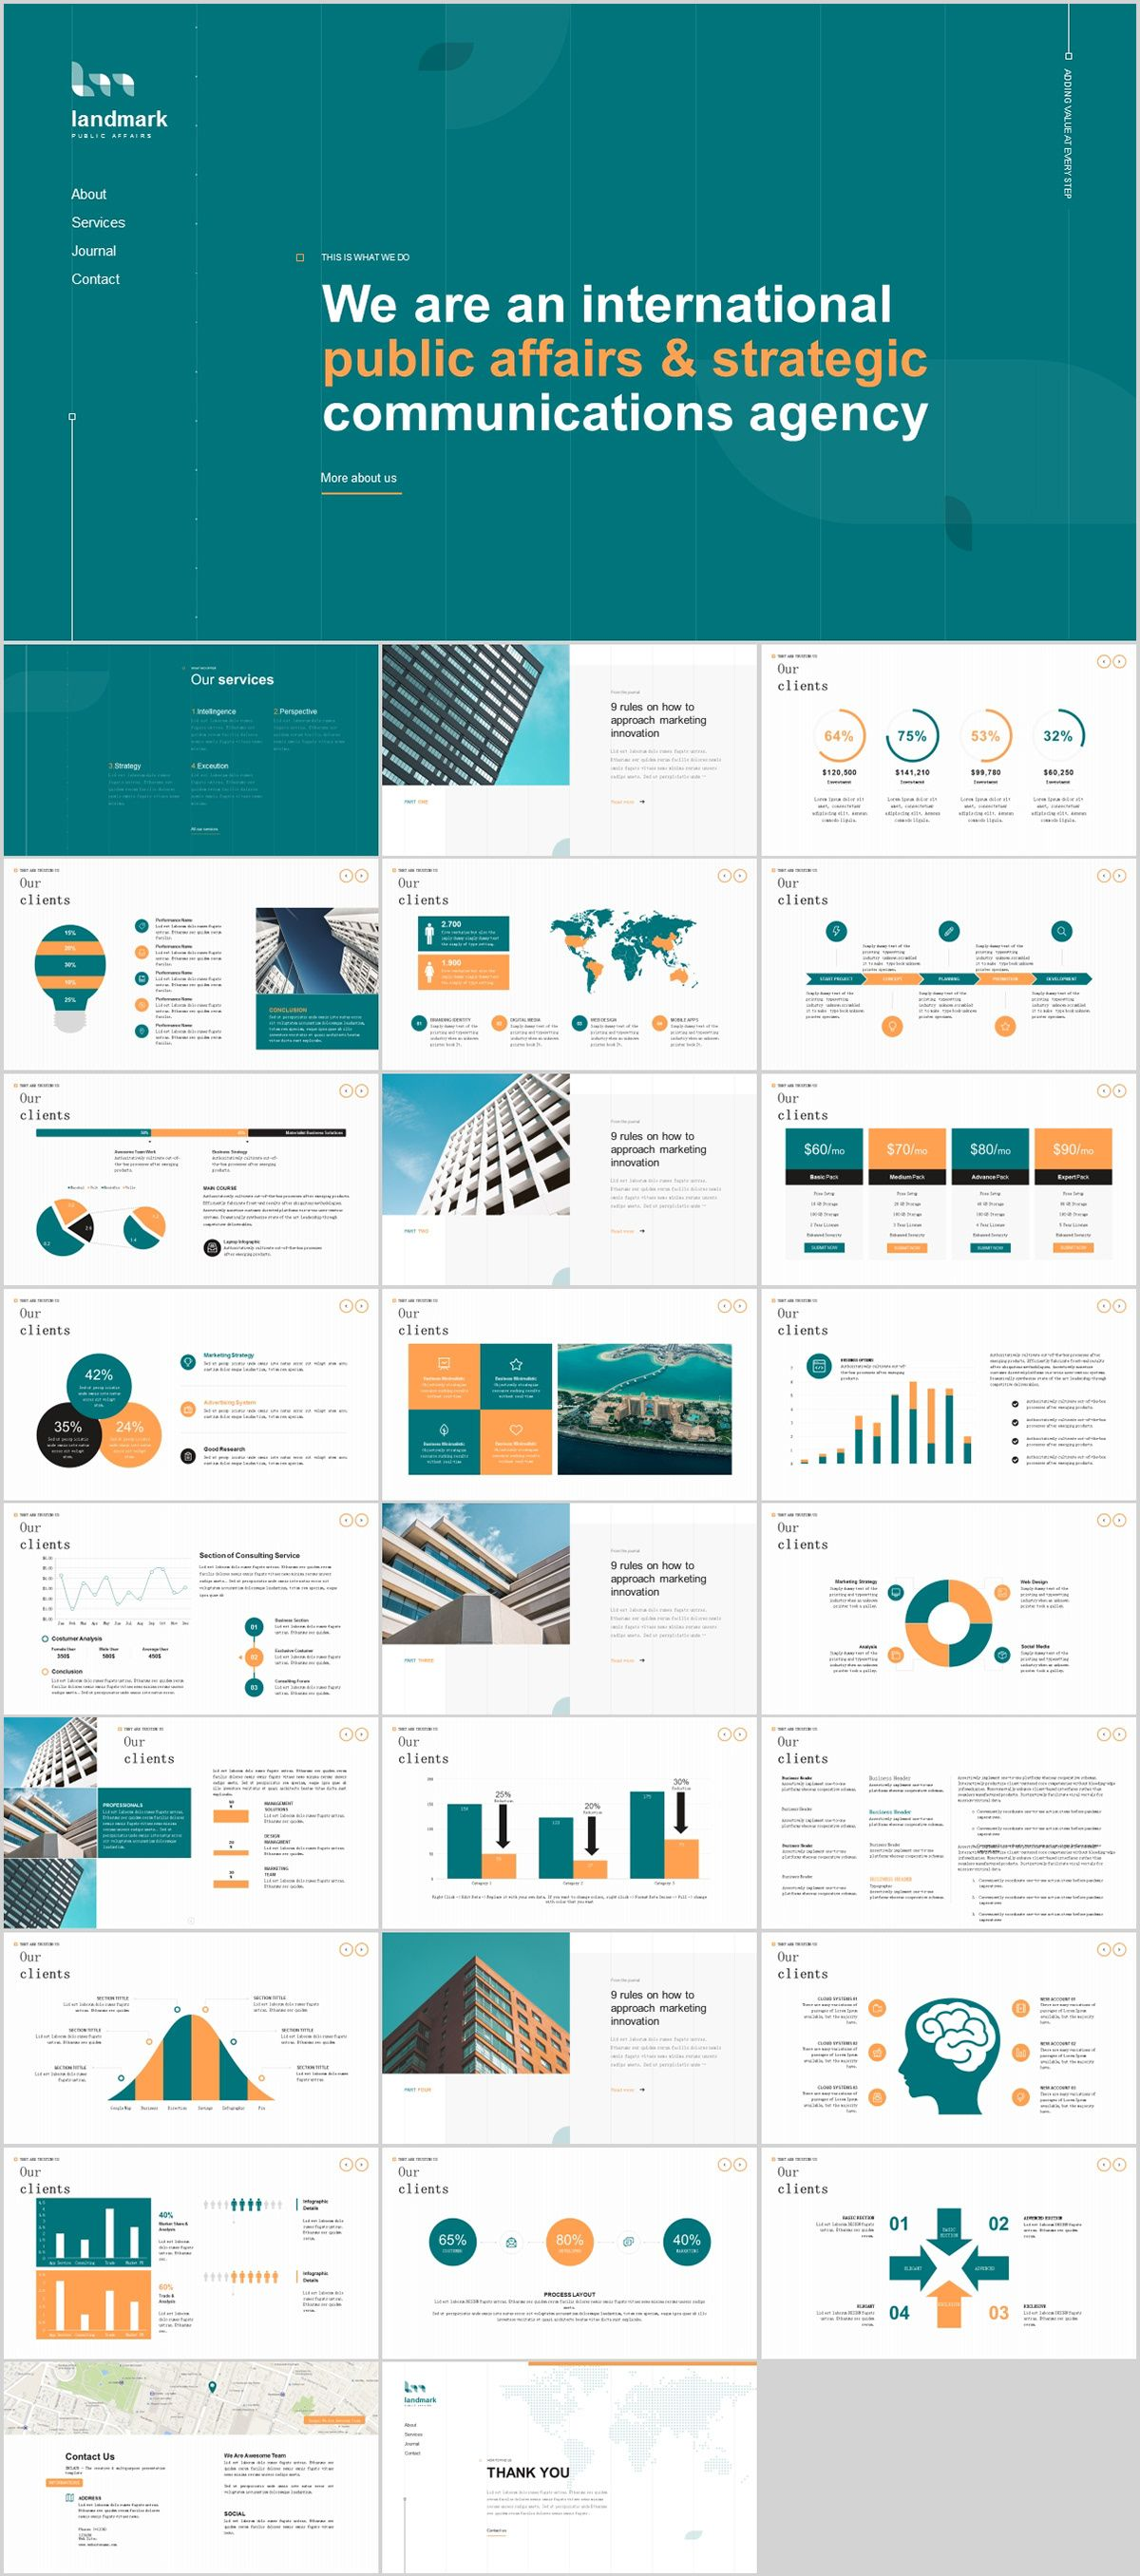 27 company cool introduction chart powerpoint template on behance